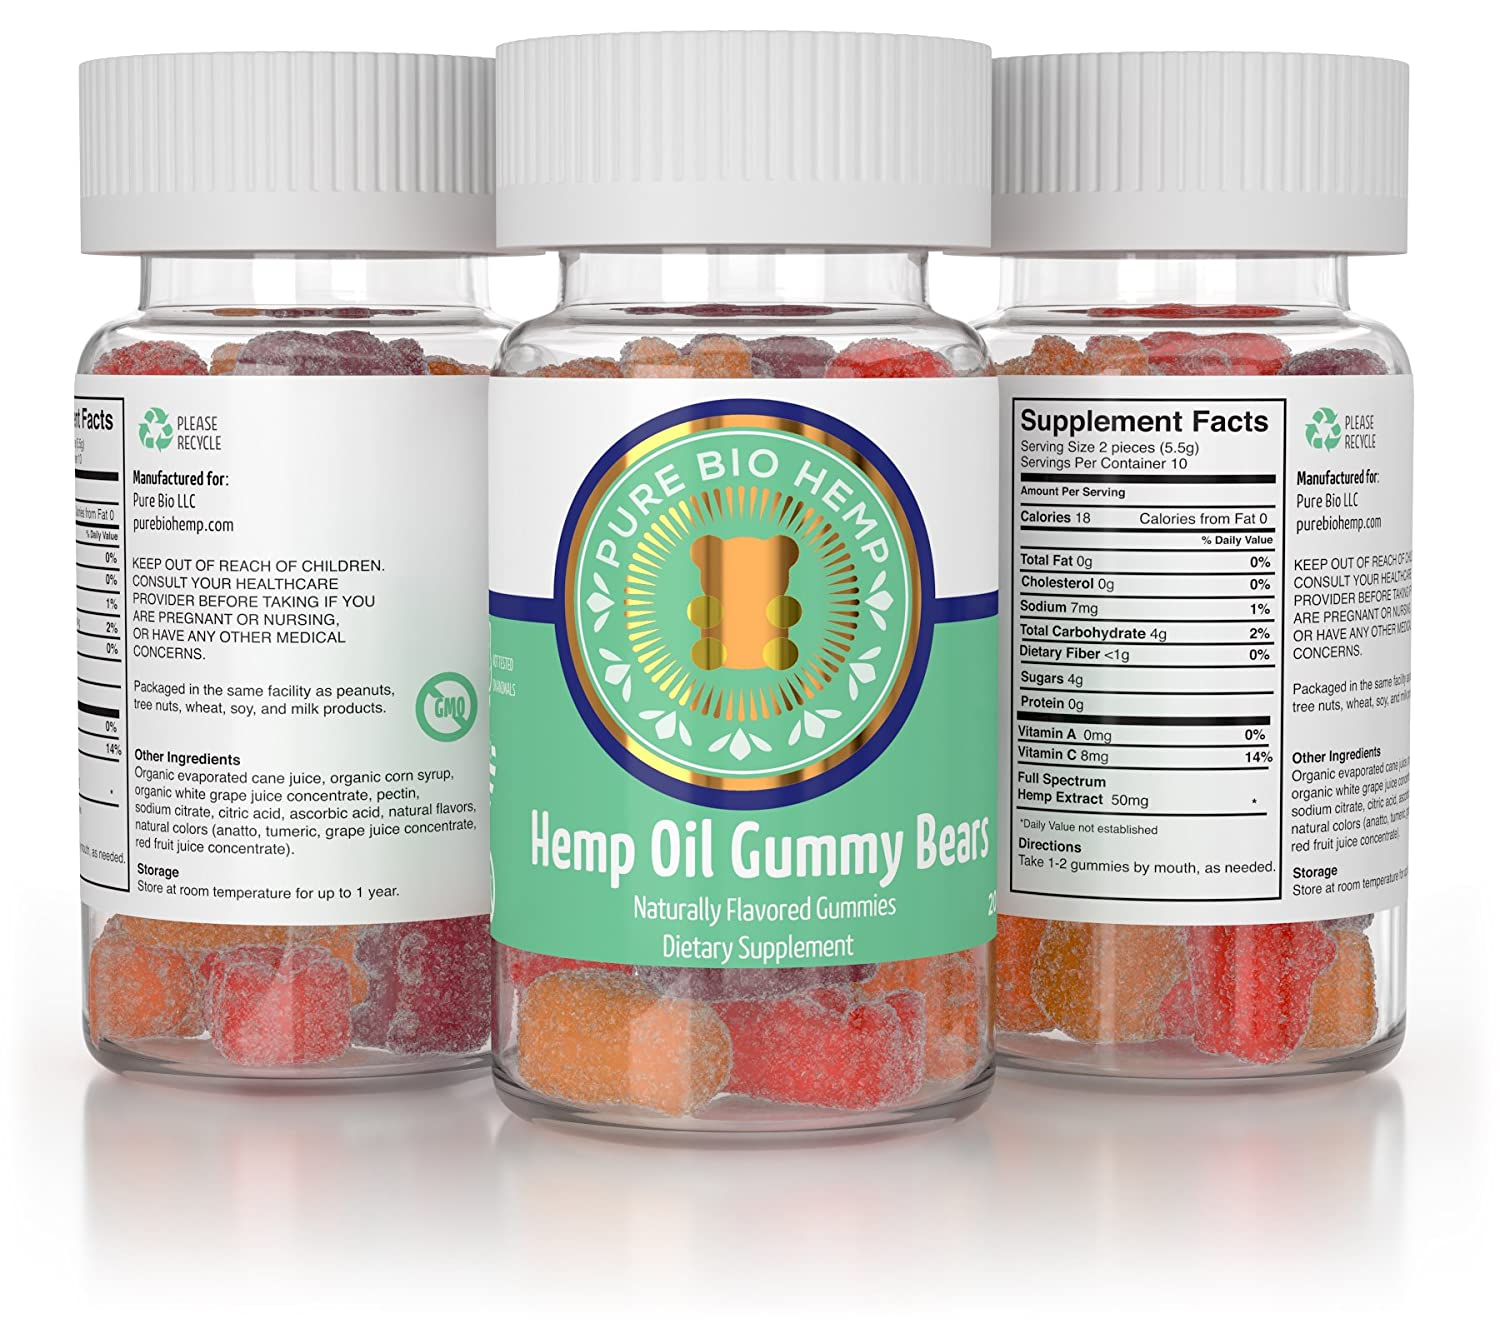 Organic Hemp Gummy Bears 500mg - Tropical Fruit Hemp Oil Flavor, 25mg per  gummy, pain and stress